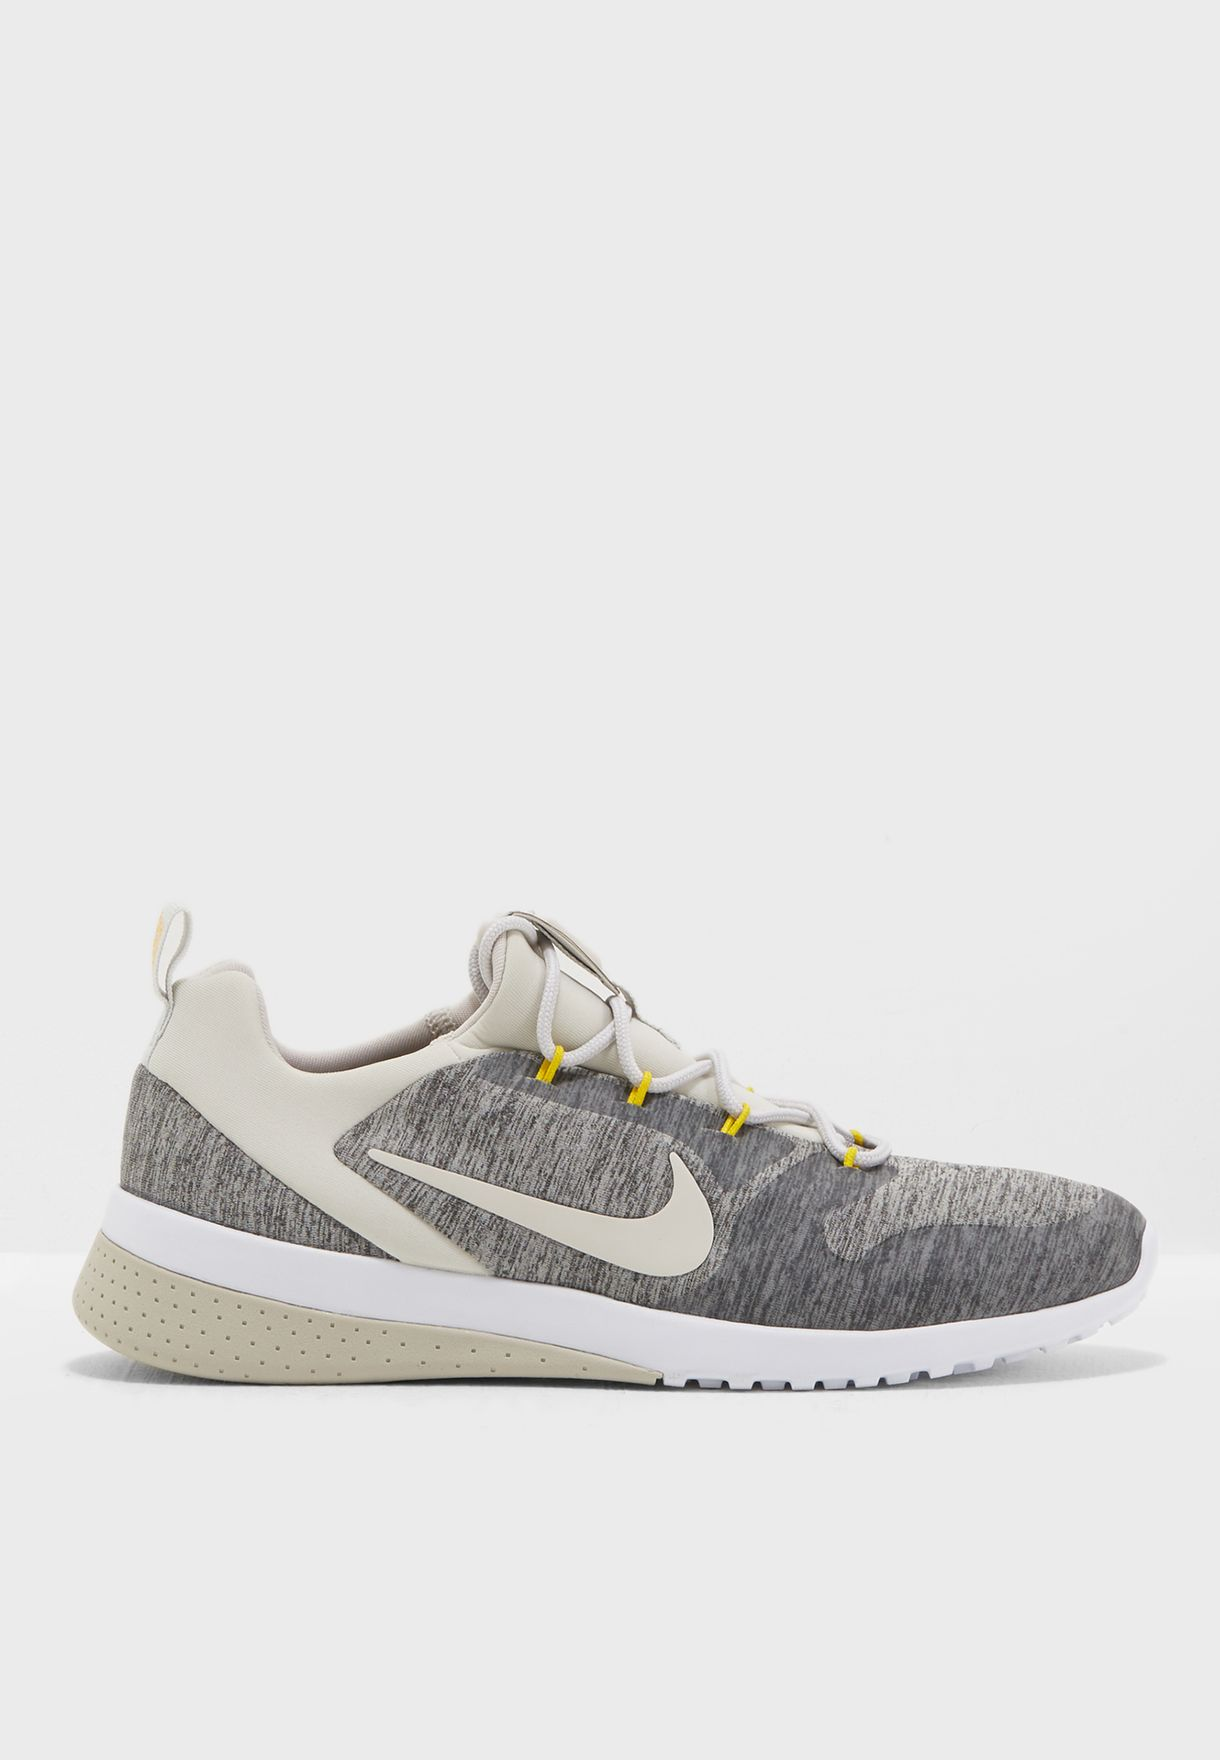 new product 84c39 1218e Shop Nike grey CK Racer 916792-005 for Women in Bahrain - NI